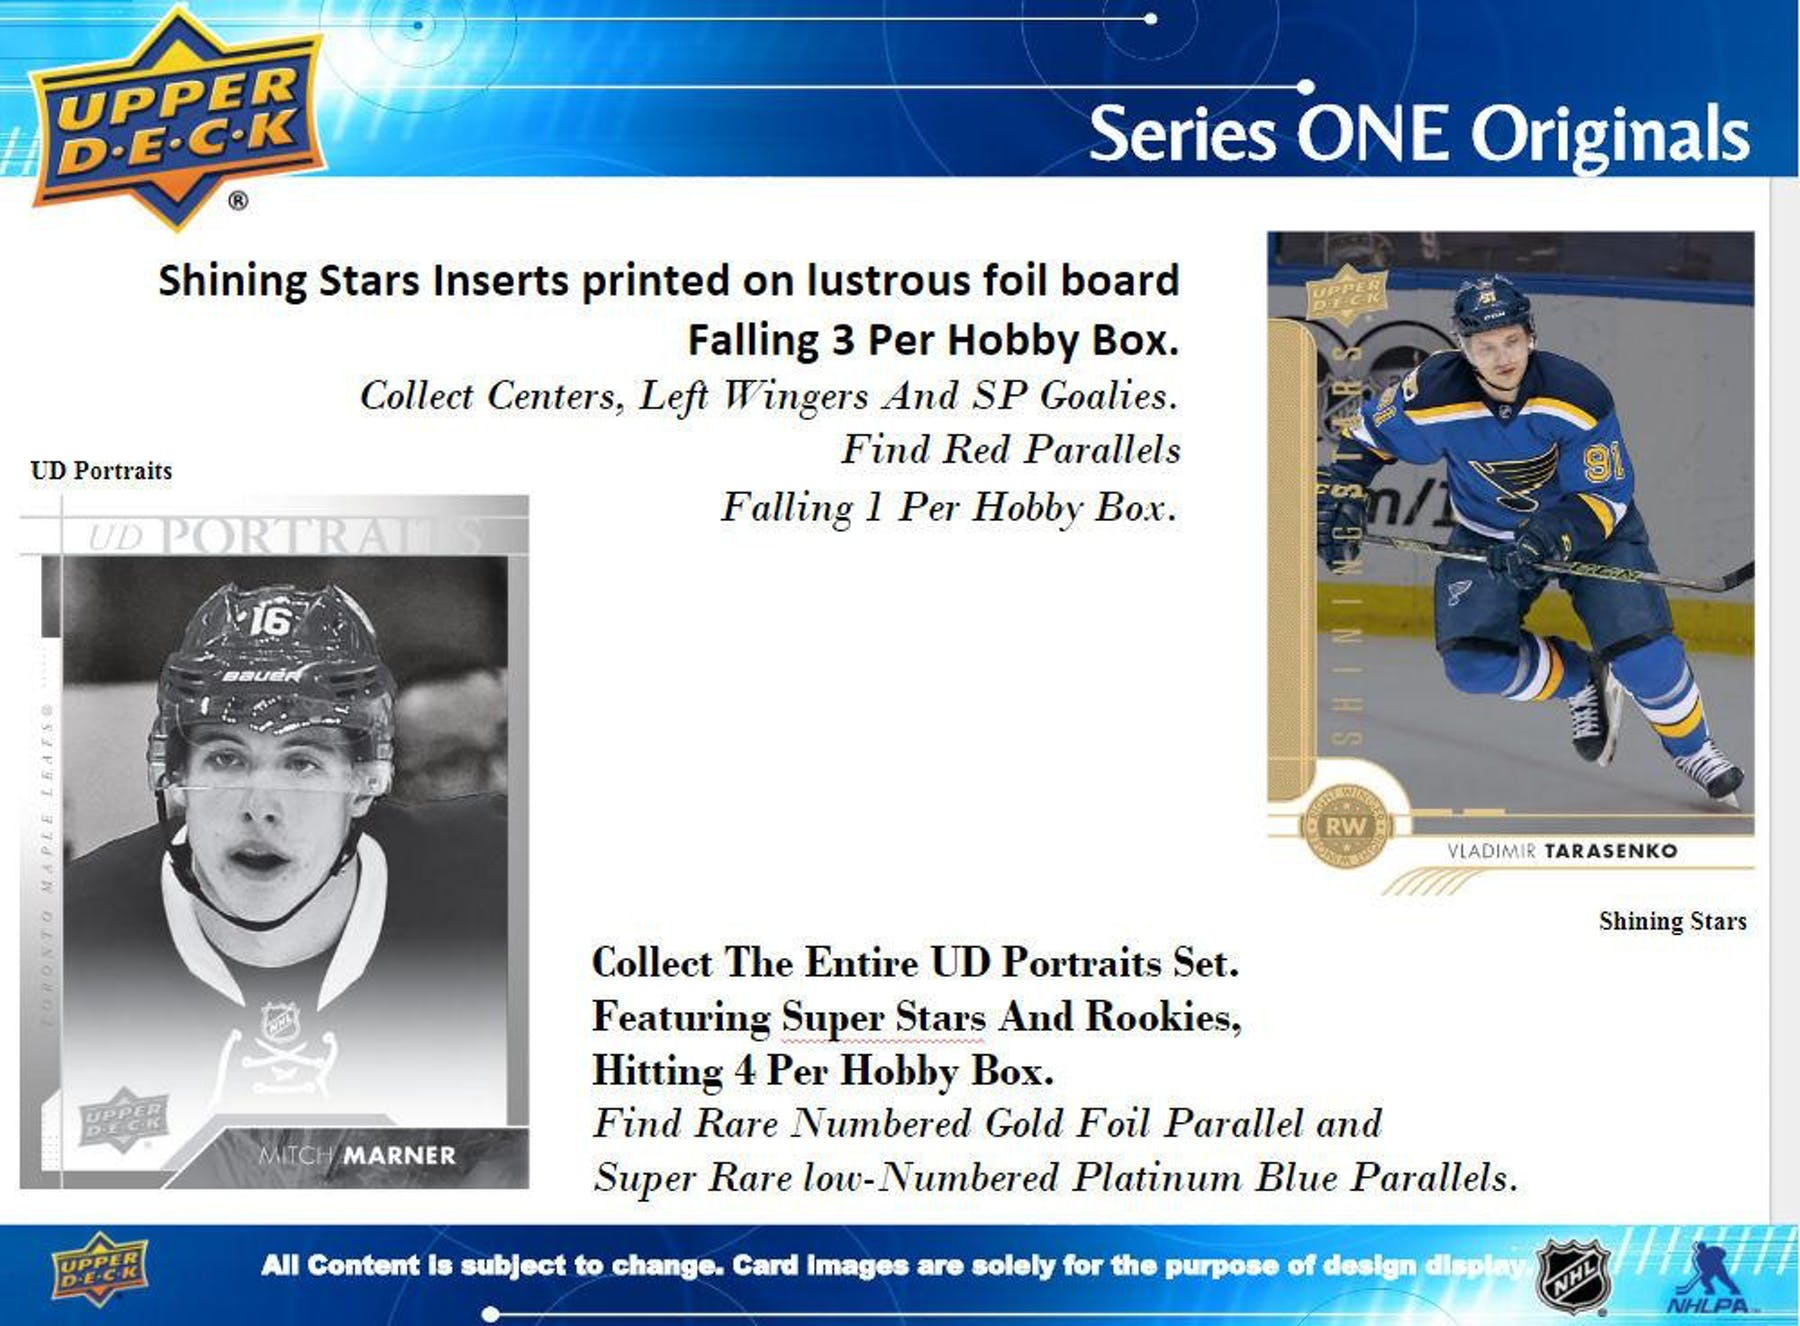 2017/18 Upper Deck Series 1 Hockey Hobby Box - RANDOM TEAM 2 BOX BREAK #119